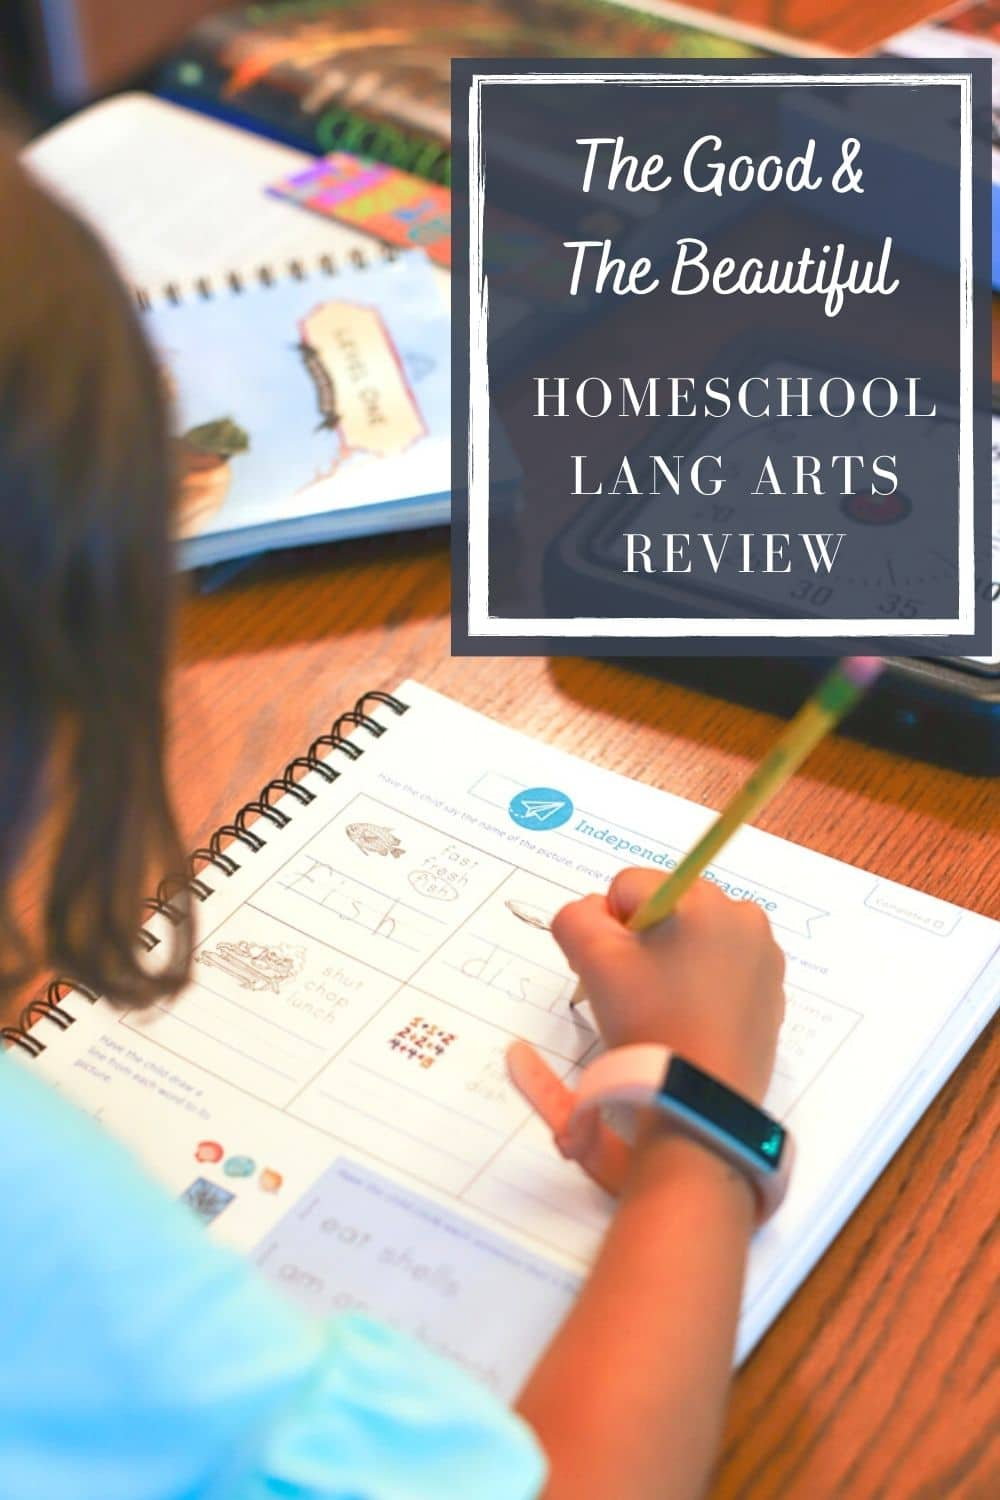 The Good & The Beautiful Language Arts Review- A Healthy Slice of Life